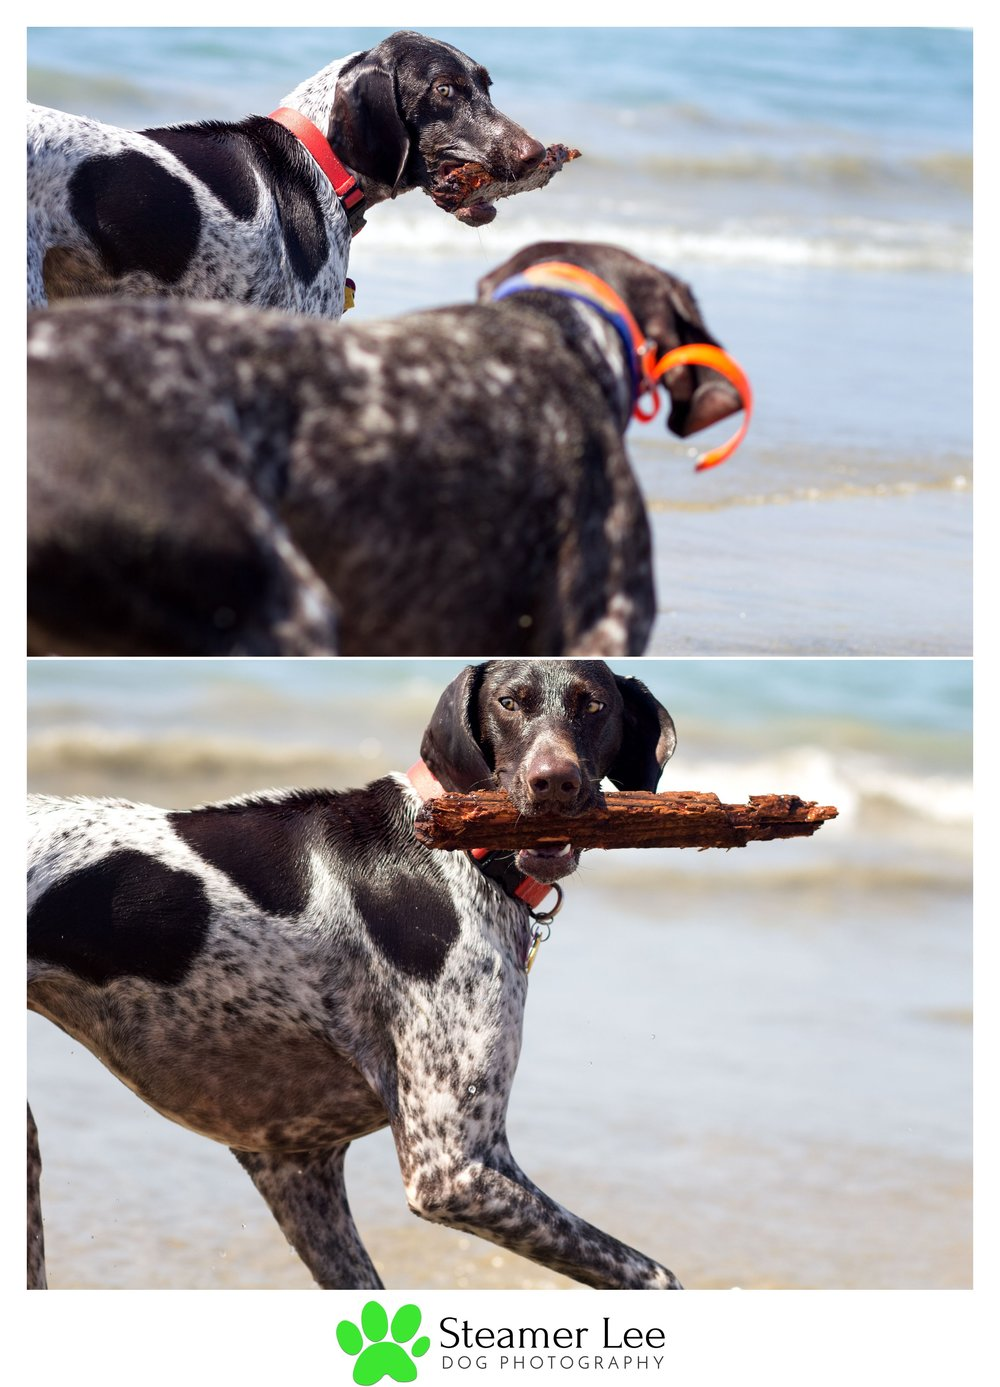 Steamer Lee Dog Photography - German Shorthaired Pointer Meetup - Huntington Beach Dog Beach - 00005.jpg